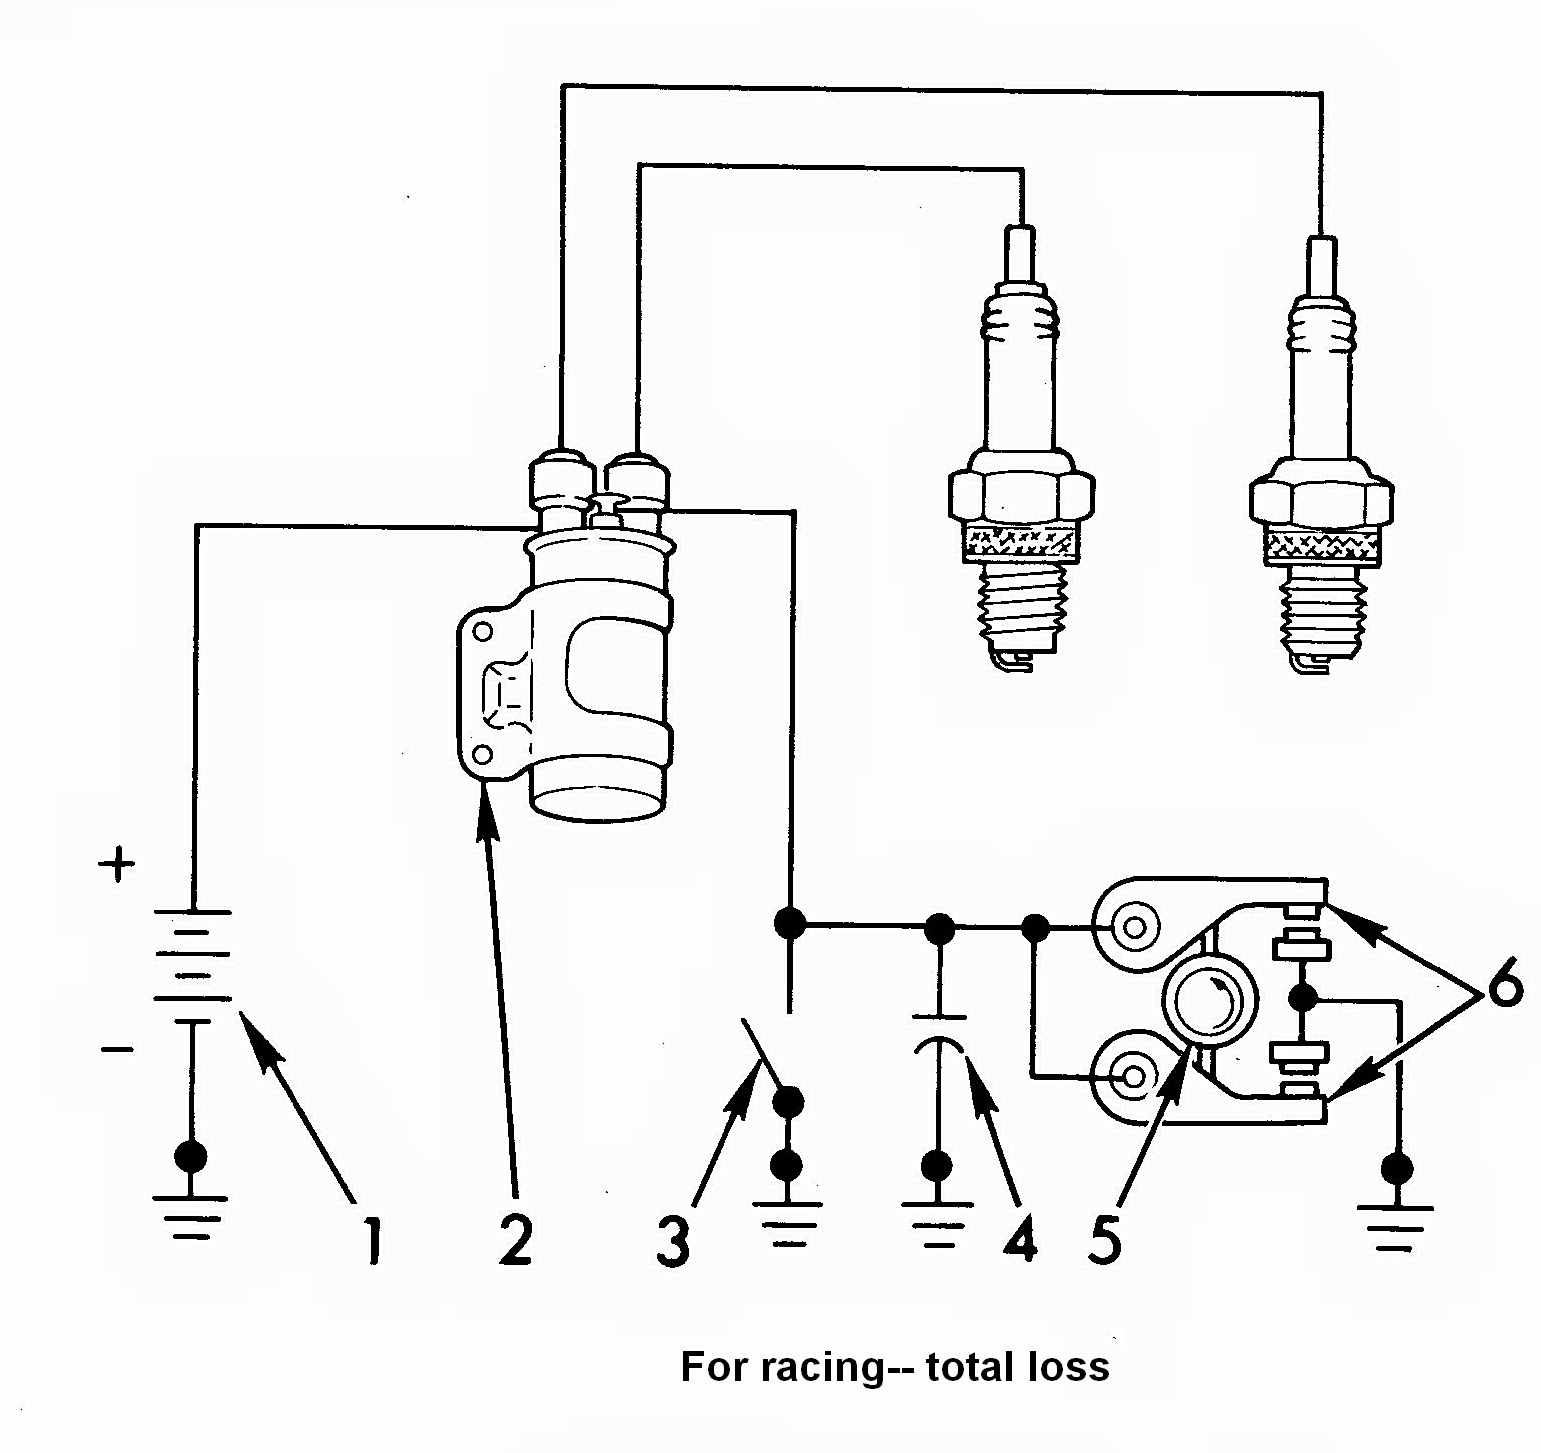 Points with dualfire coil dia only ignition coil wiring diagram points circuit and schematics diagram ford ignition coil wiring diagram at soozxer.org